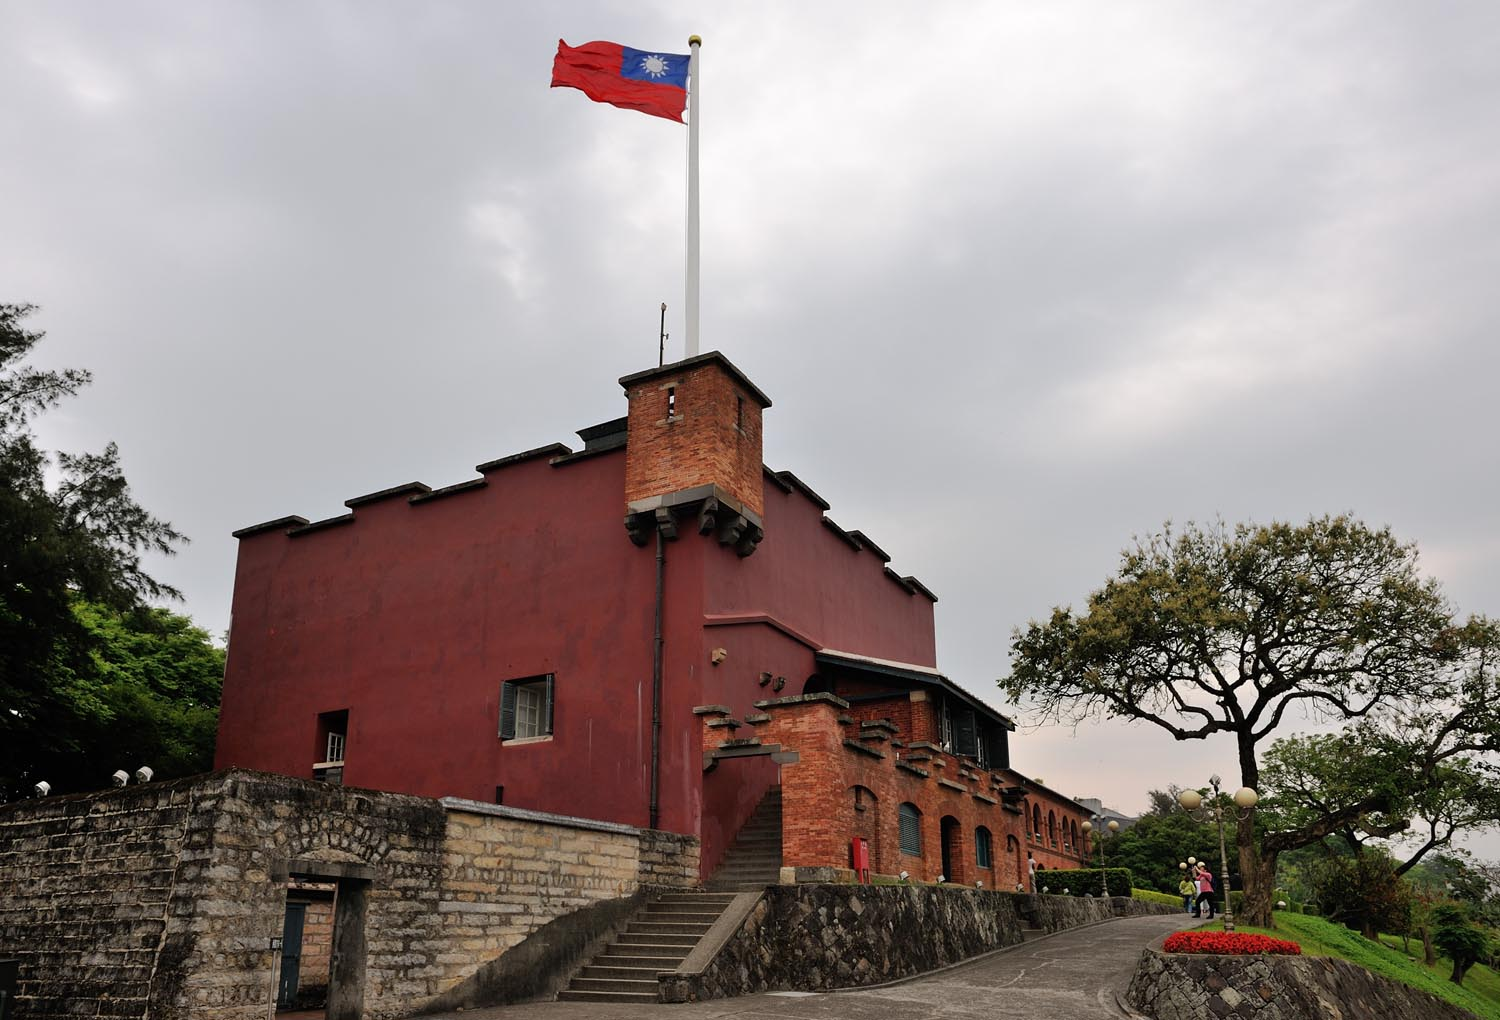 The Amazing Life: Fort Santo Domingo and Old British Consulate